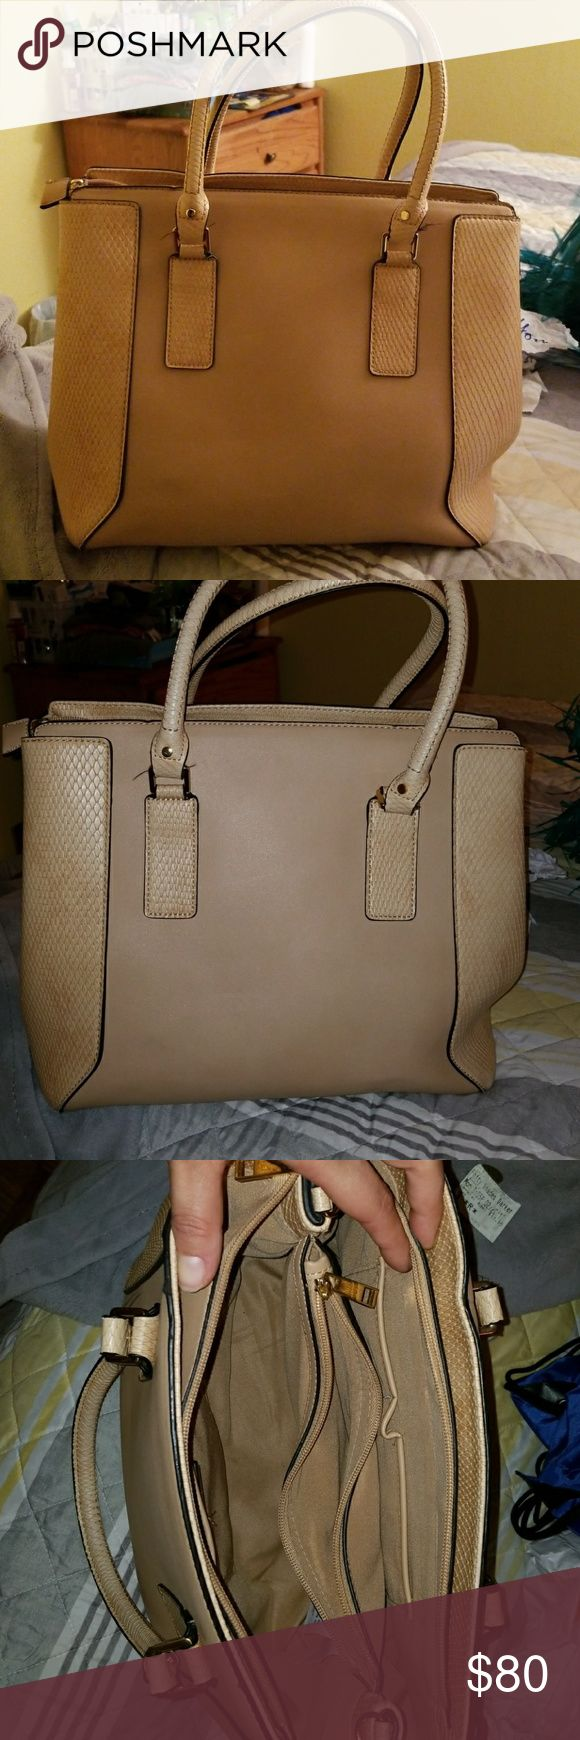 Aldo  TAN large tote Color is a creamy tan AUTHENTIC ALDO tote bag. Bag is pretty large inside comes with 3 compartments inside perfect for storing alot of items looks very nice when carrying. Aldo Bags Totes